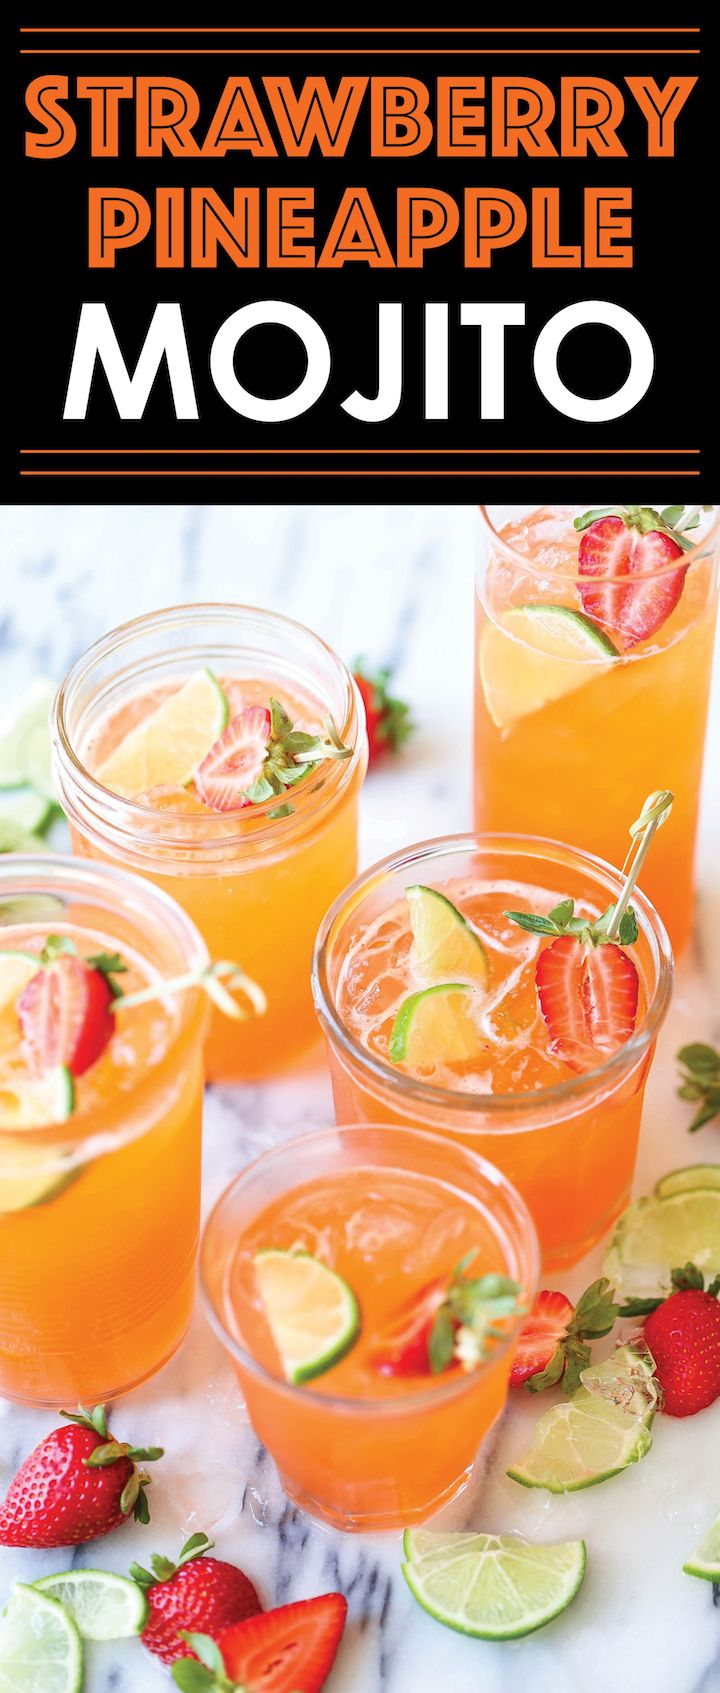 Strawberry Pineapple Mojito - A fun, sweet tropical twist to everyone's favorite cocktail! And you can easily transform this to a non-alcoholic drink!